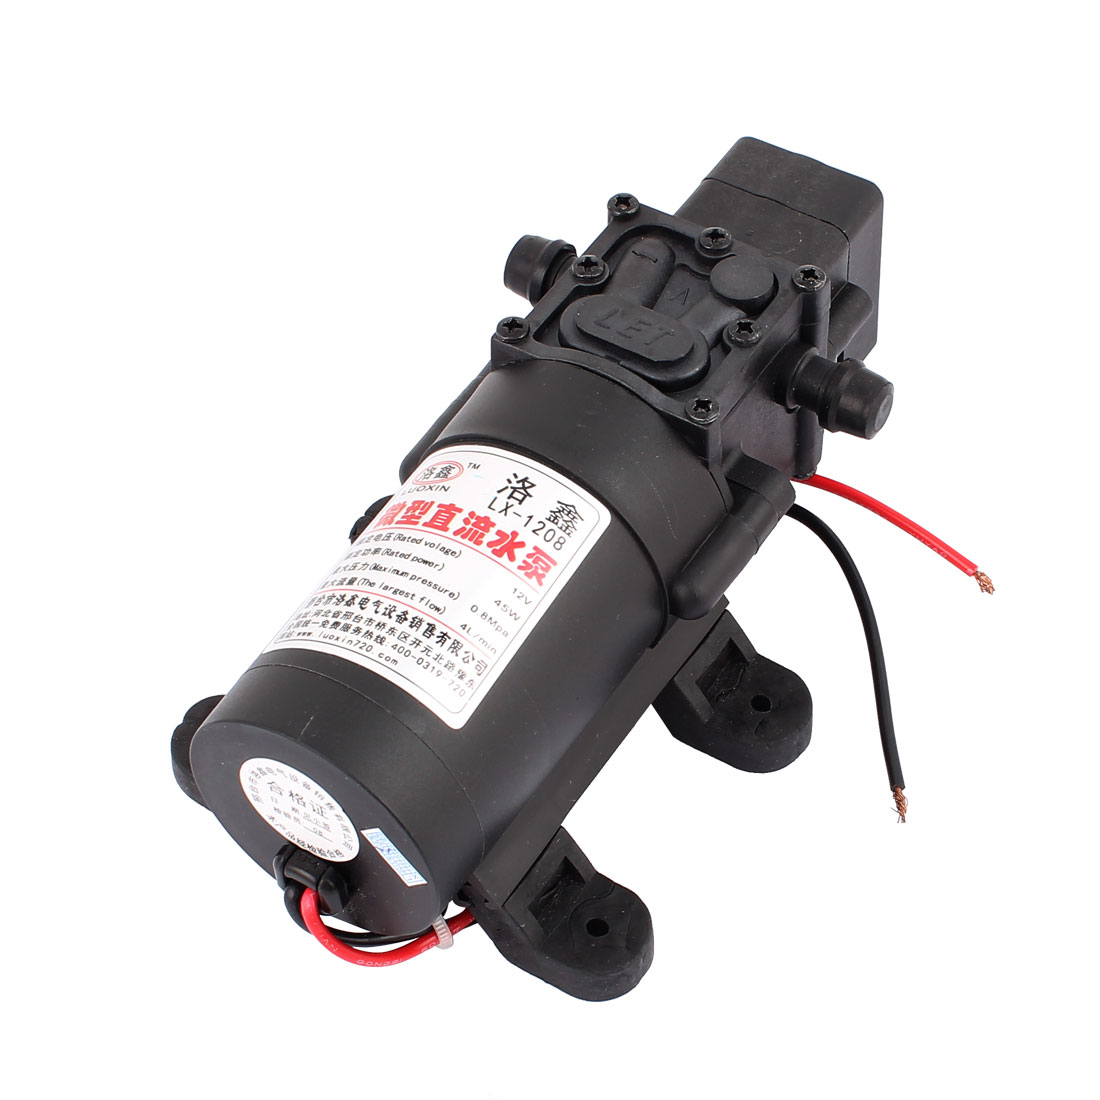 DC 12V 45W 4L/Min Max Flow Micro Motor Diaphragm Pump For Household